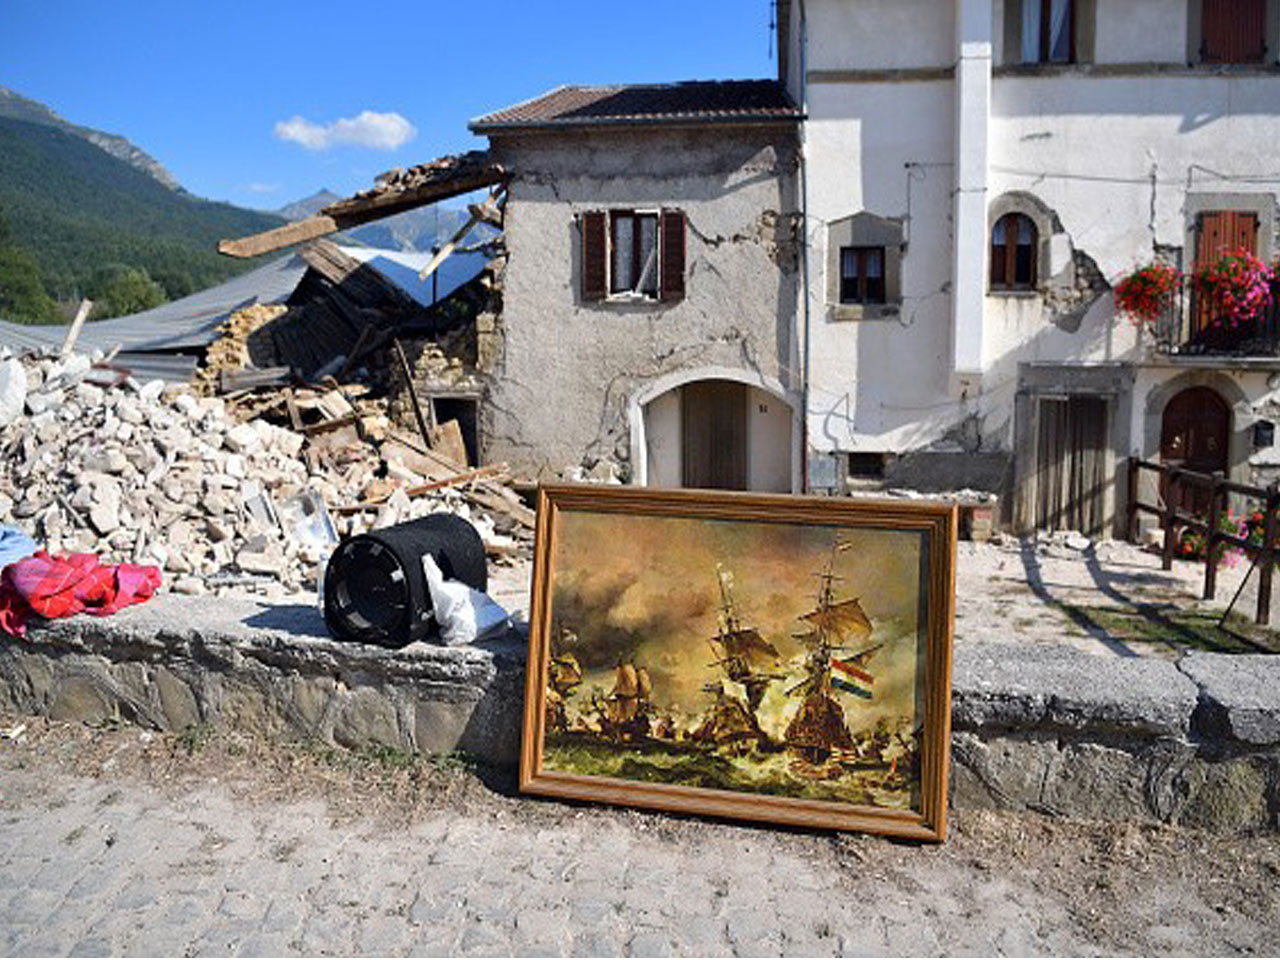 Italy earthquake relief efforts